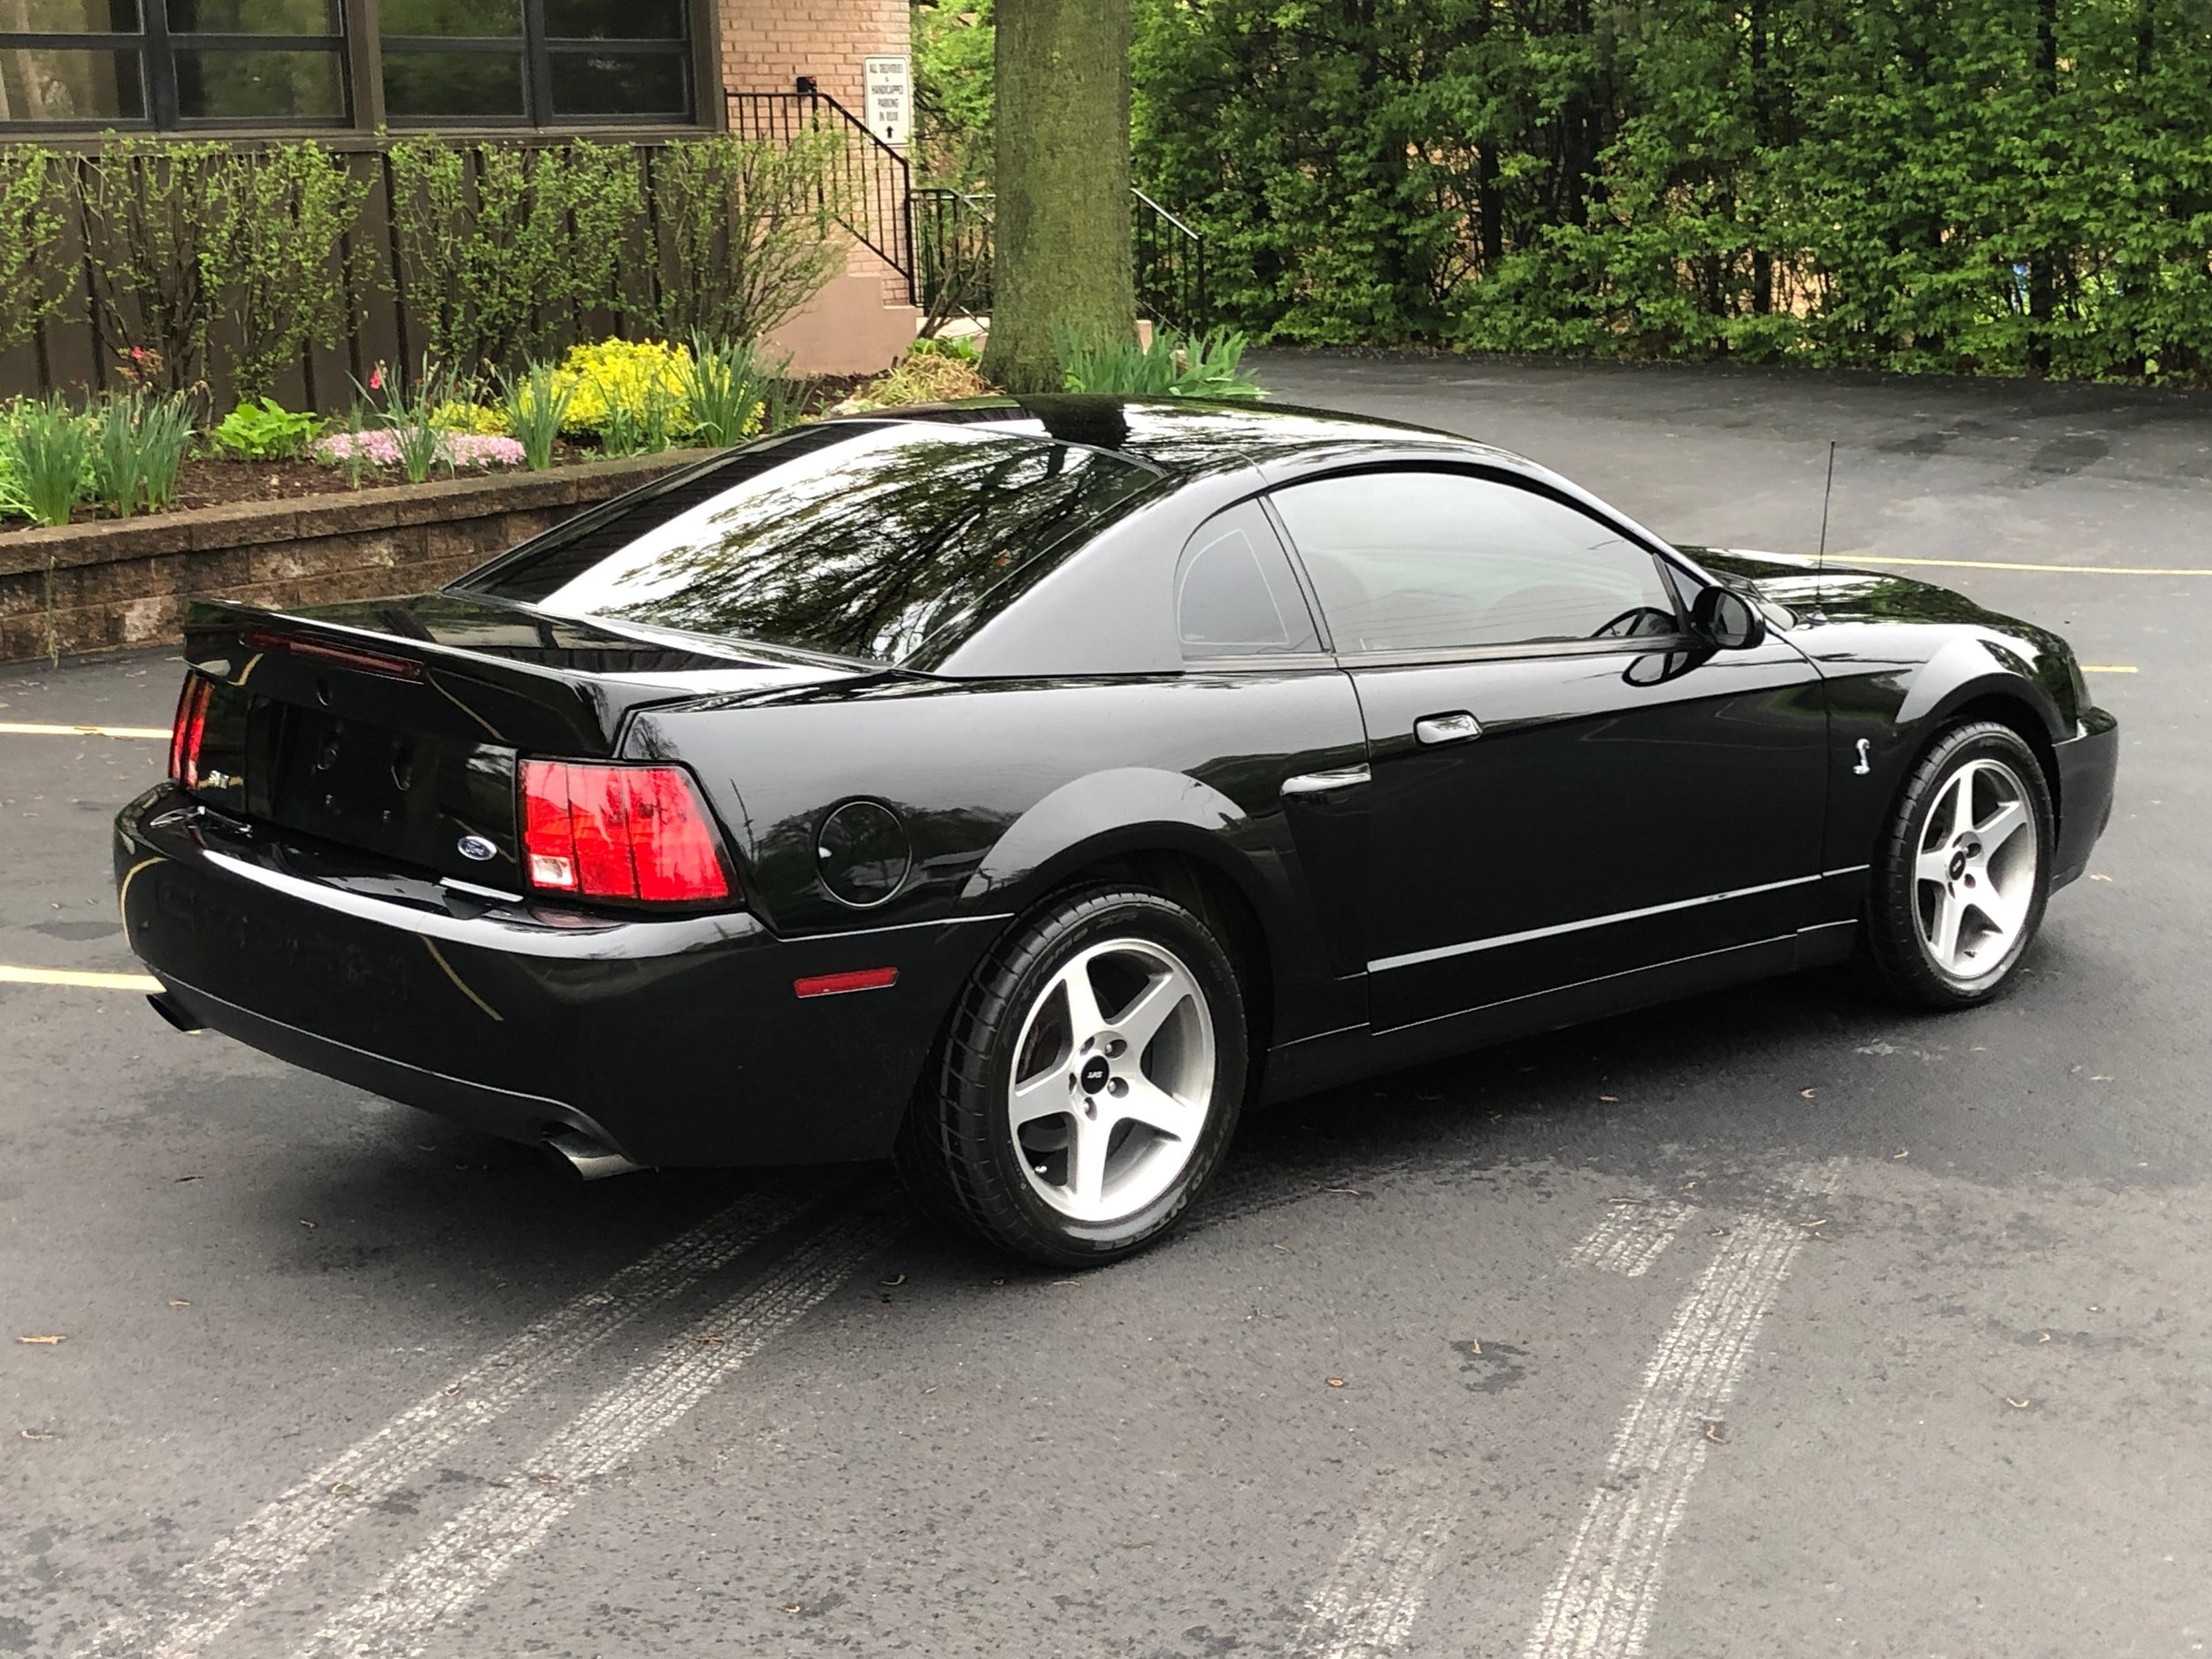 2003 Ford Mustang Svt Cobra Car Side